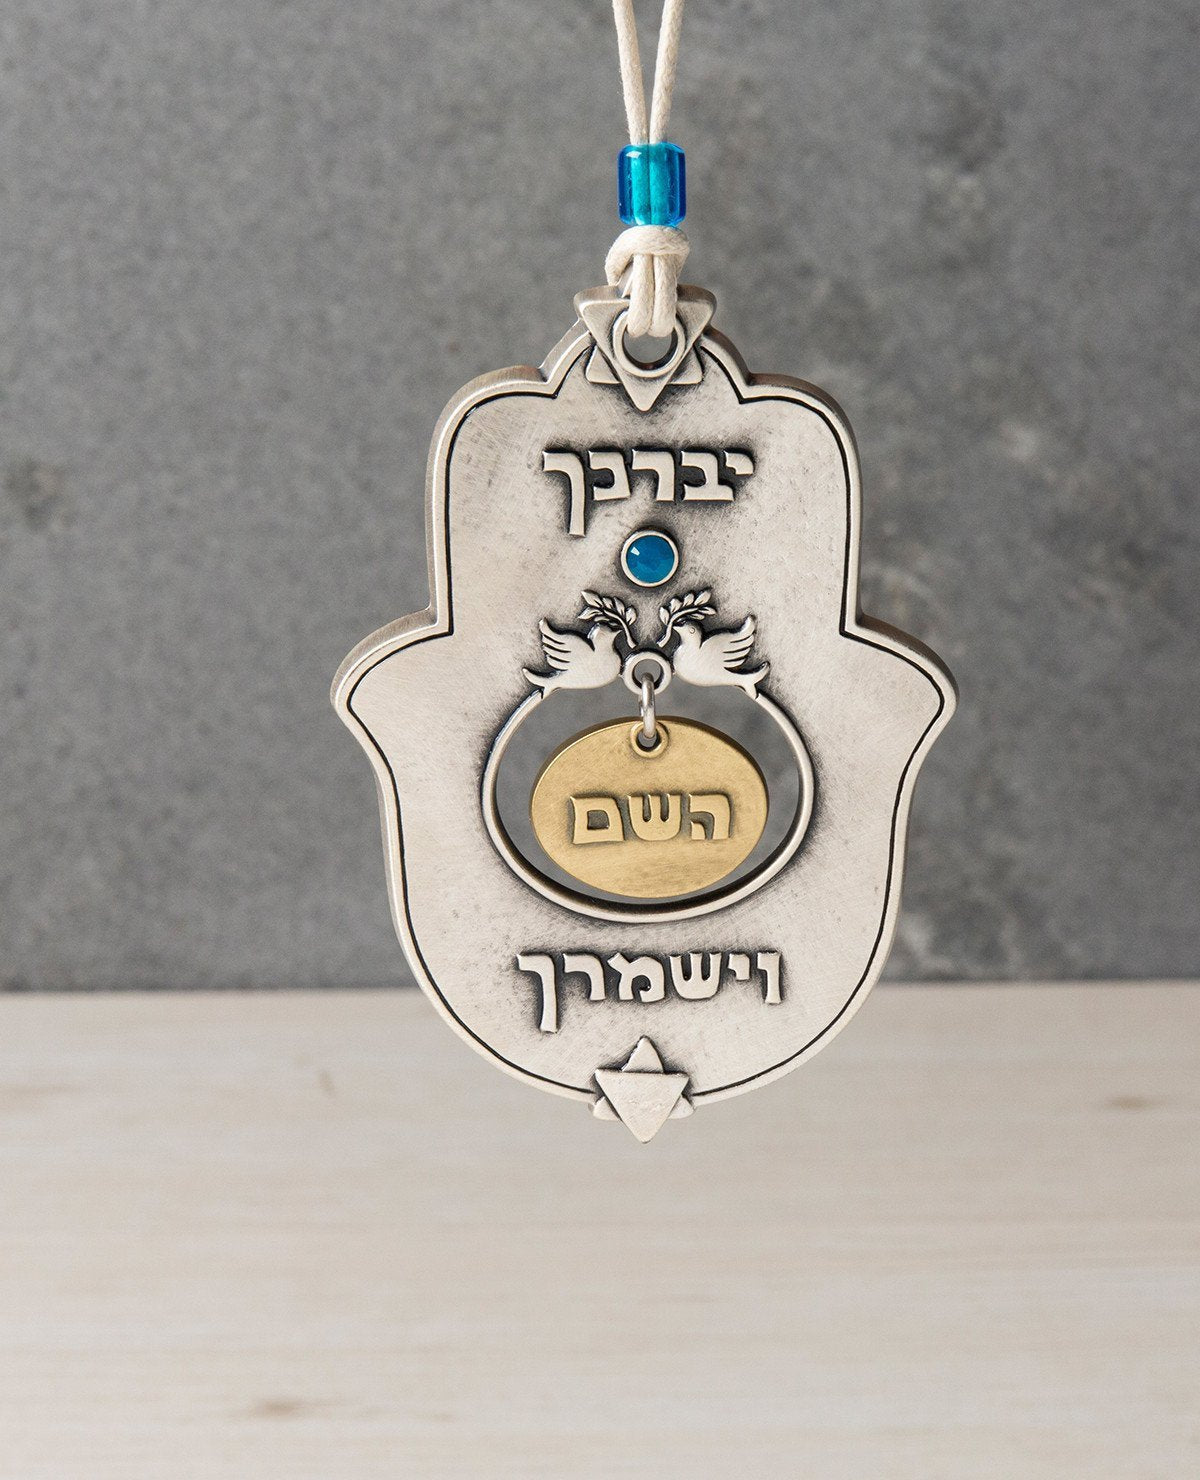 "A designed hanging Hamsa ornament that carries on it the blessing of ""May the Lord bless you and keep you safe"", words that were added to the Kohen's blessing out of Jacob's blessing before his death to Joseph's sons - Ephraim and Manasseh. The Hamsa is coated in sterling silver combined with brass and has the blessed sentence embossed. Embedded at the center is a blue Swarovski stone and a pair of doves with an olive branch. At the top and bottom of the Hamsa are Stars of David. The Hamsa hangs from a natu"